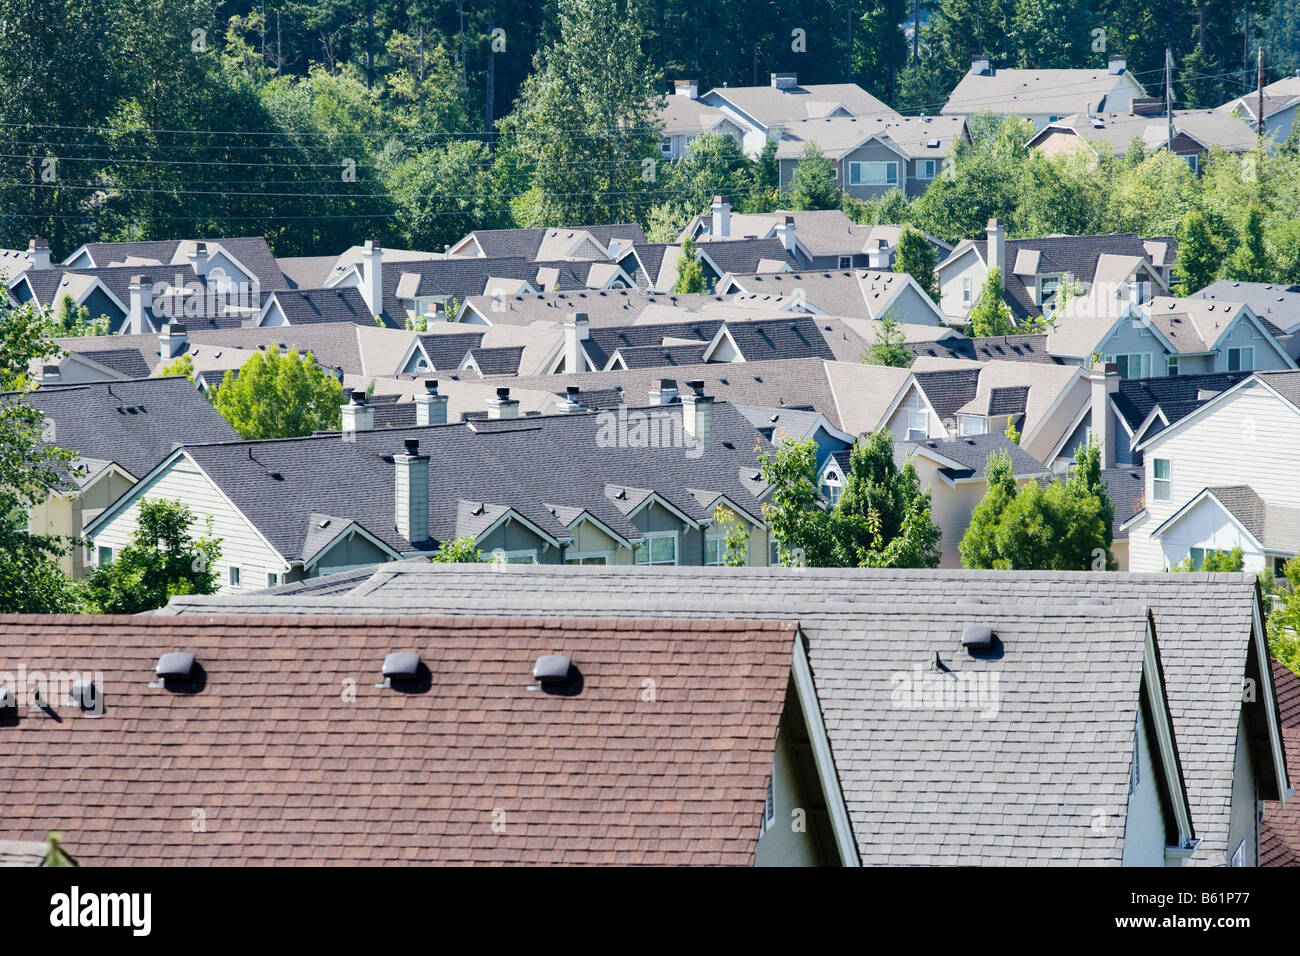 Rooftops of a housing development in the Issaquah Highlands Washington United States Stock Photo